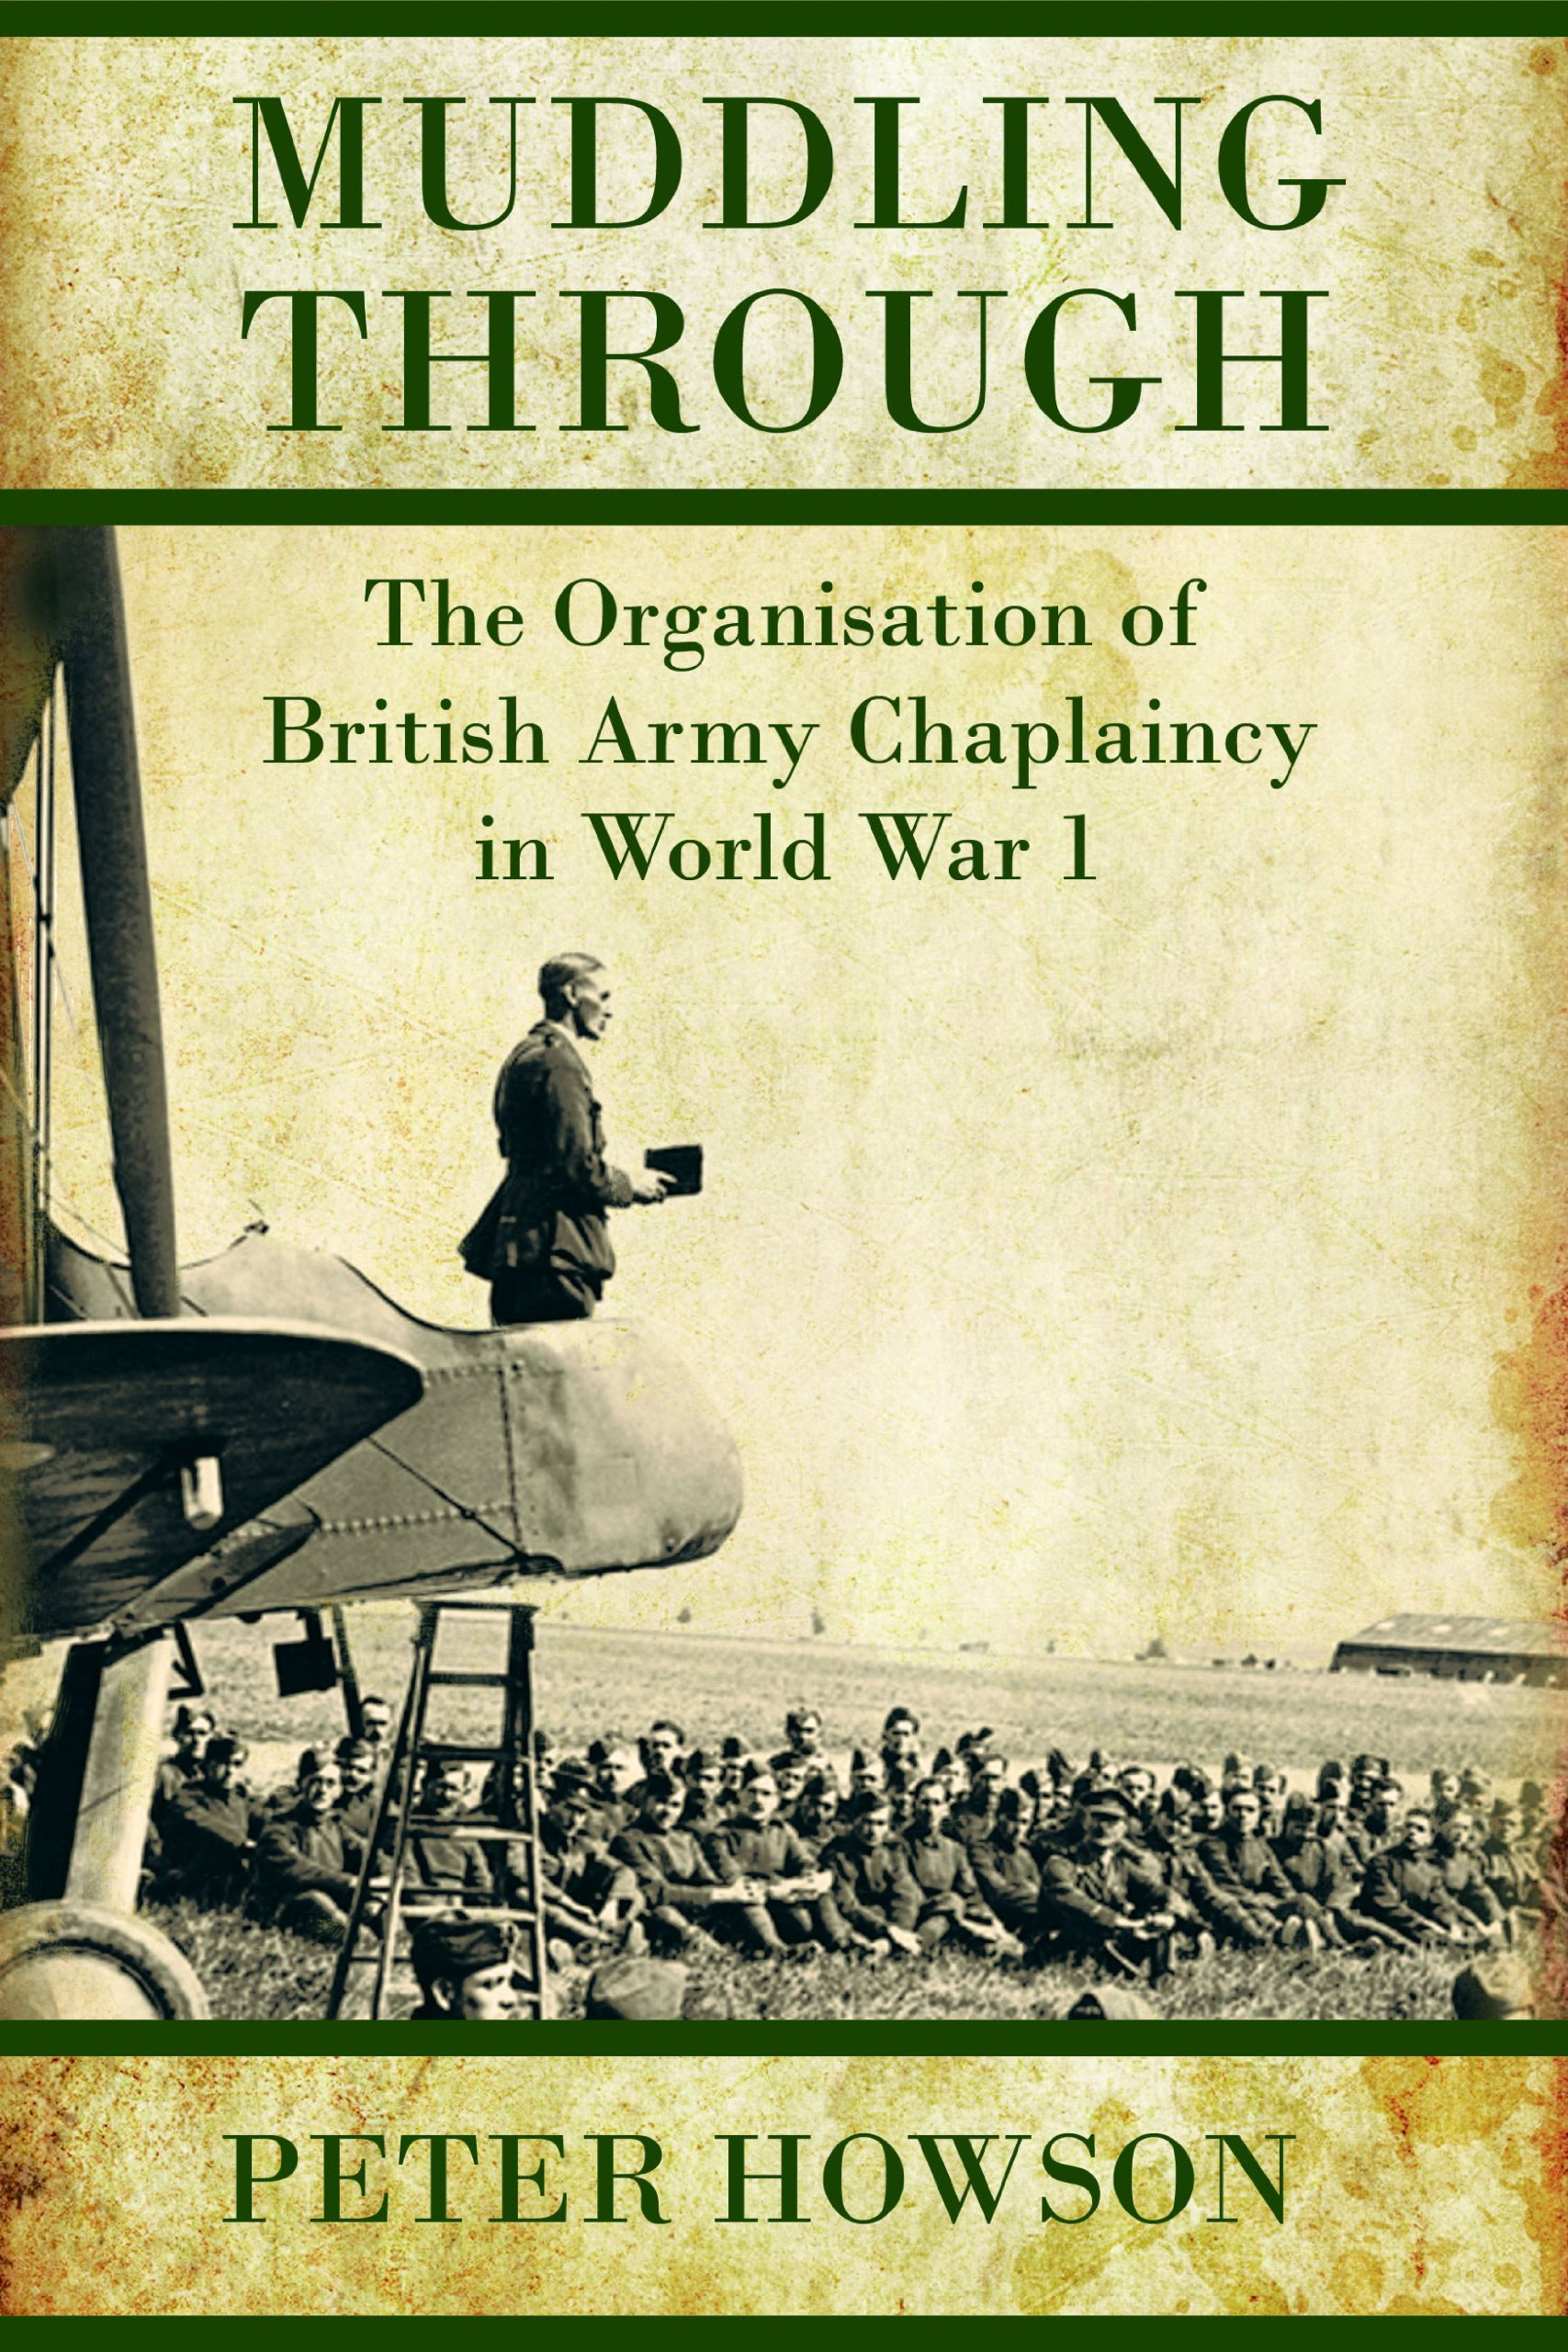 Muddling Through: The Organisation of British Army Chaplaincy in World War One (Helion Studies in Military History) PDF ePub fb2 book